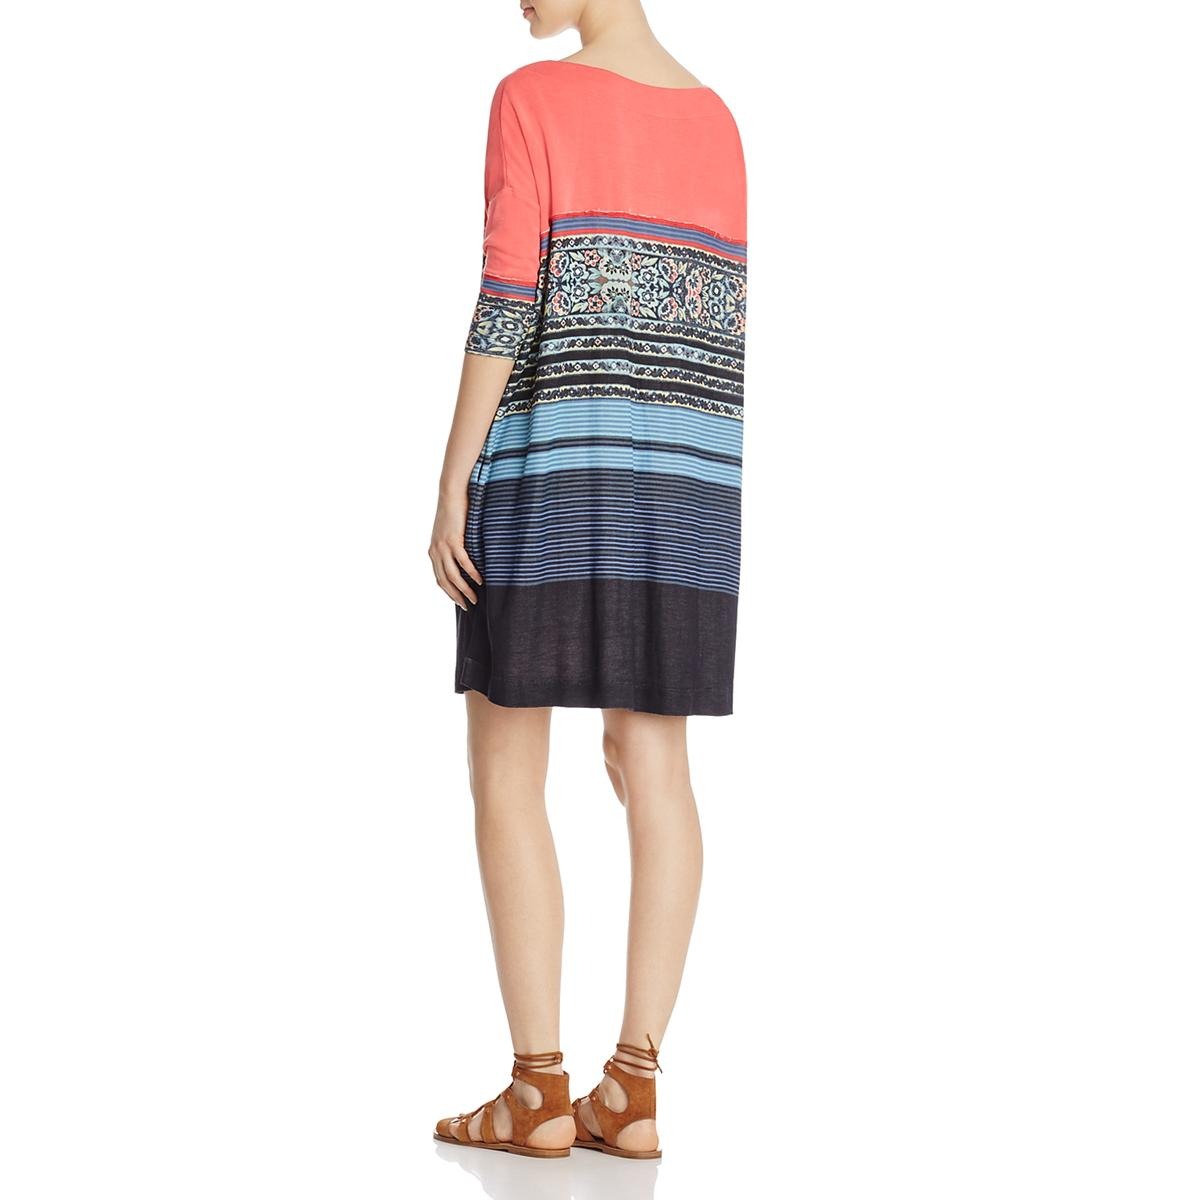 Free People Womens Printed Colorblock Boatneck T Shirt Dress Bhfo